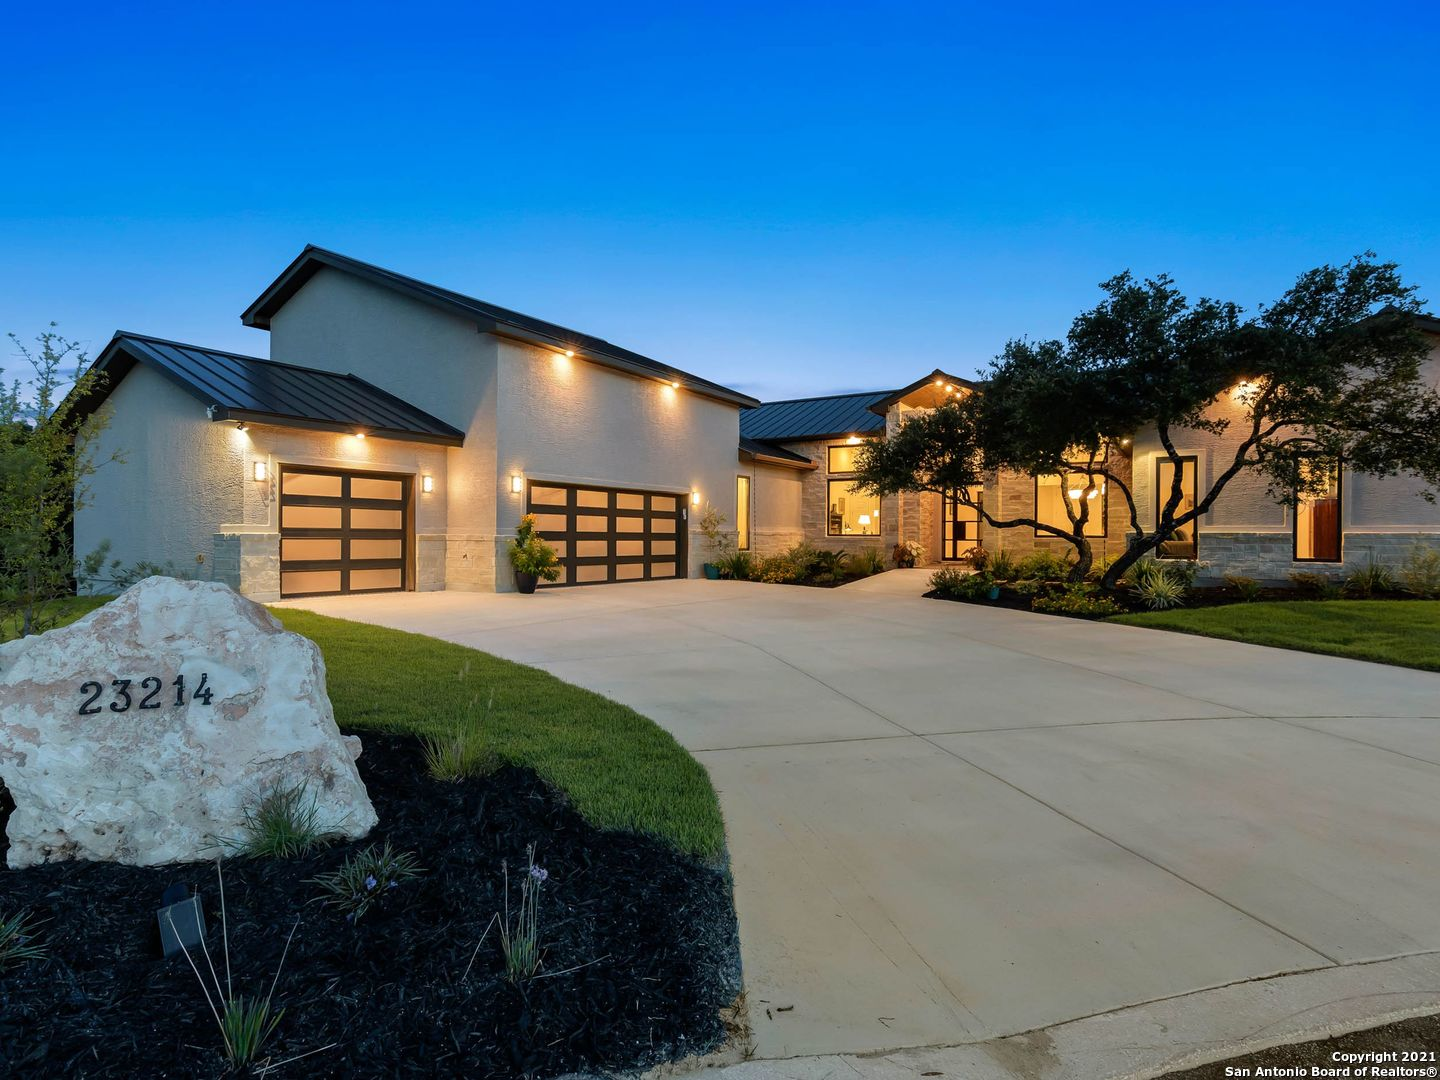 Built in 2020, this almost new home is nestled on a private lot in The Canyons at Scenic Loop. This home features a seamless layout for daily living & sophisticated entertaining. The open floor plan was thoughtfully designed with clean lines & greenbelt views from almost every room.  A light filled great room is complete with high ceilings, back-lit built-ins, gas fireplace & easy access to an extensive outdoor living space with fireplace & outdoor kitchen. Gourmet kitchen with a waterfall island is sure to be a gathering space when entertaining family & friends. This mostly one-story floor plan offers a fourth bedroom/guest suite with a full bath upstairs that can also be used as a game room or studio.  All other bedrooms are downstairs with a split plan for privacy. Master bedroom  has outside access to a private patio & a wall of windows that highlight the views.  Spa inspired master bath with a private exercise room, large walk-in closet & access to the laundry room. Media room opens to the outside & is adjacent to a full bath (that also has outdoor access) could be an additional downstairs bedroom.   Study at front of home does have a closet & would accommodate a Murphy bed.  Three car garage and much more.  Some additional features to note: outdoor fountains viewed from entryway, multiple covered patios, amazing closet space, wide hallways, versatile floor plan, hidden storage space, extra large pantry and laundry with outdoor access.